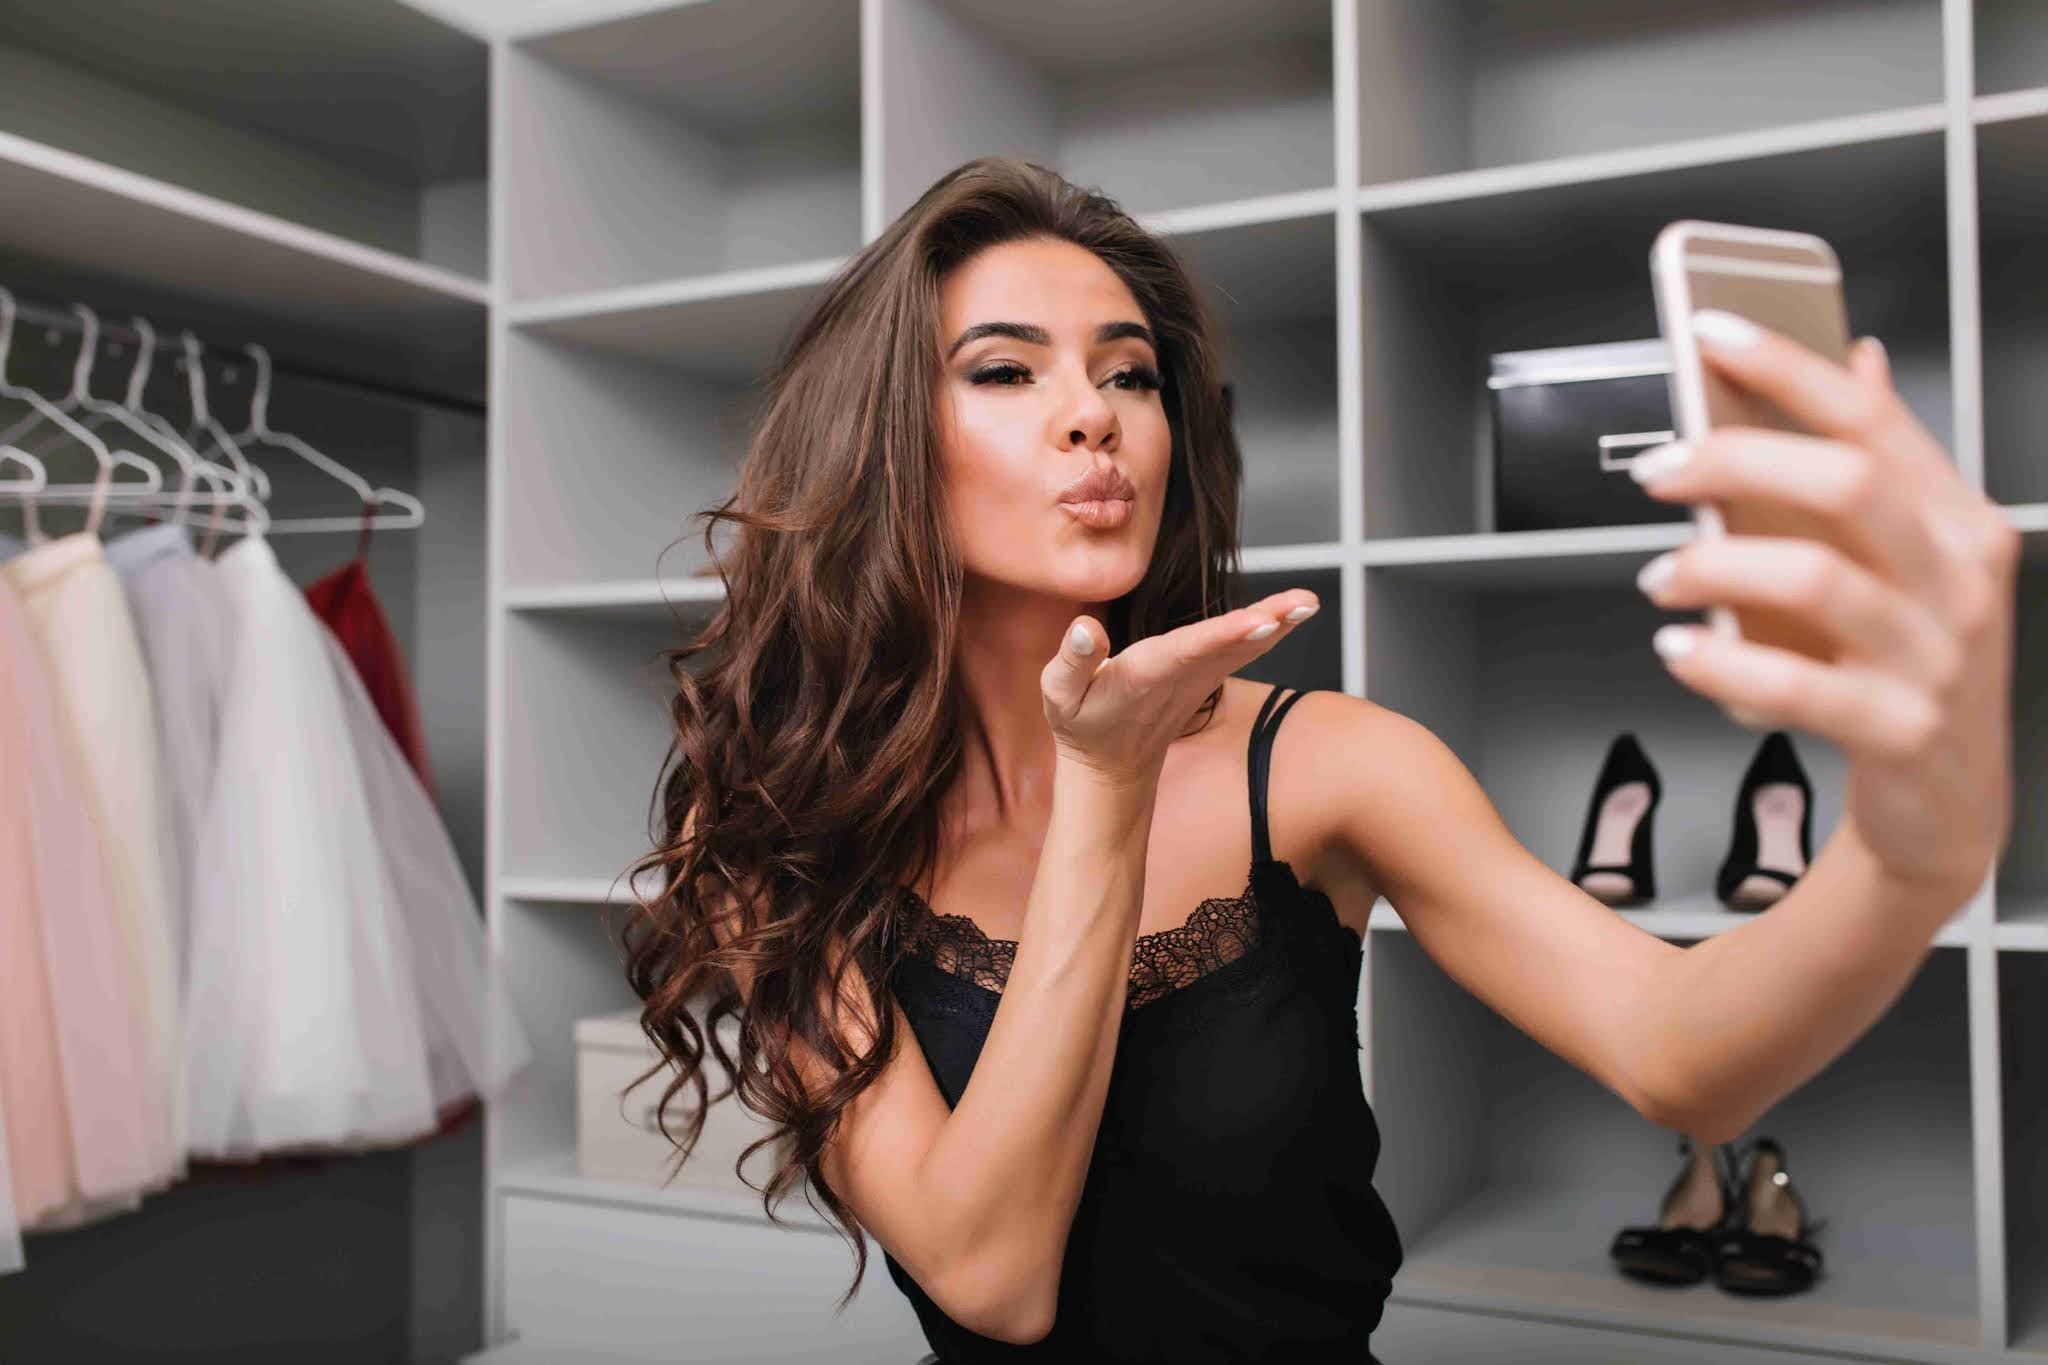 Top Tips for Dressing Confidently for Girls